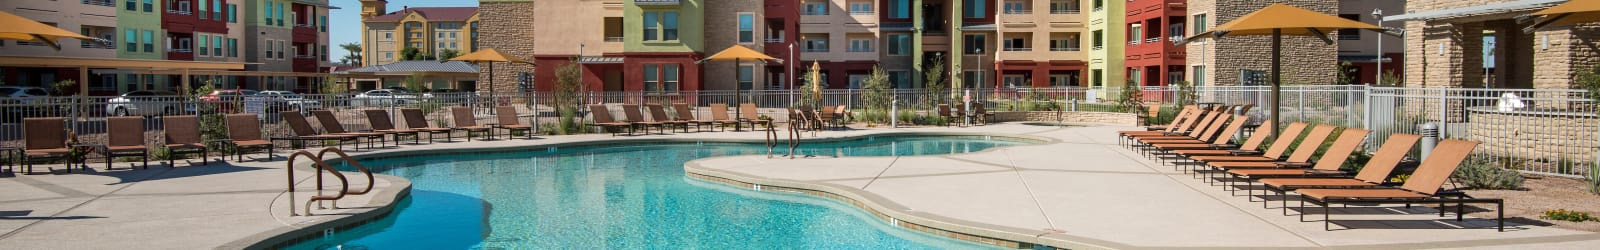 Apply at Southern Avenue Villas in Mesa, Arizona